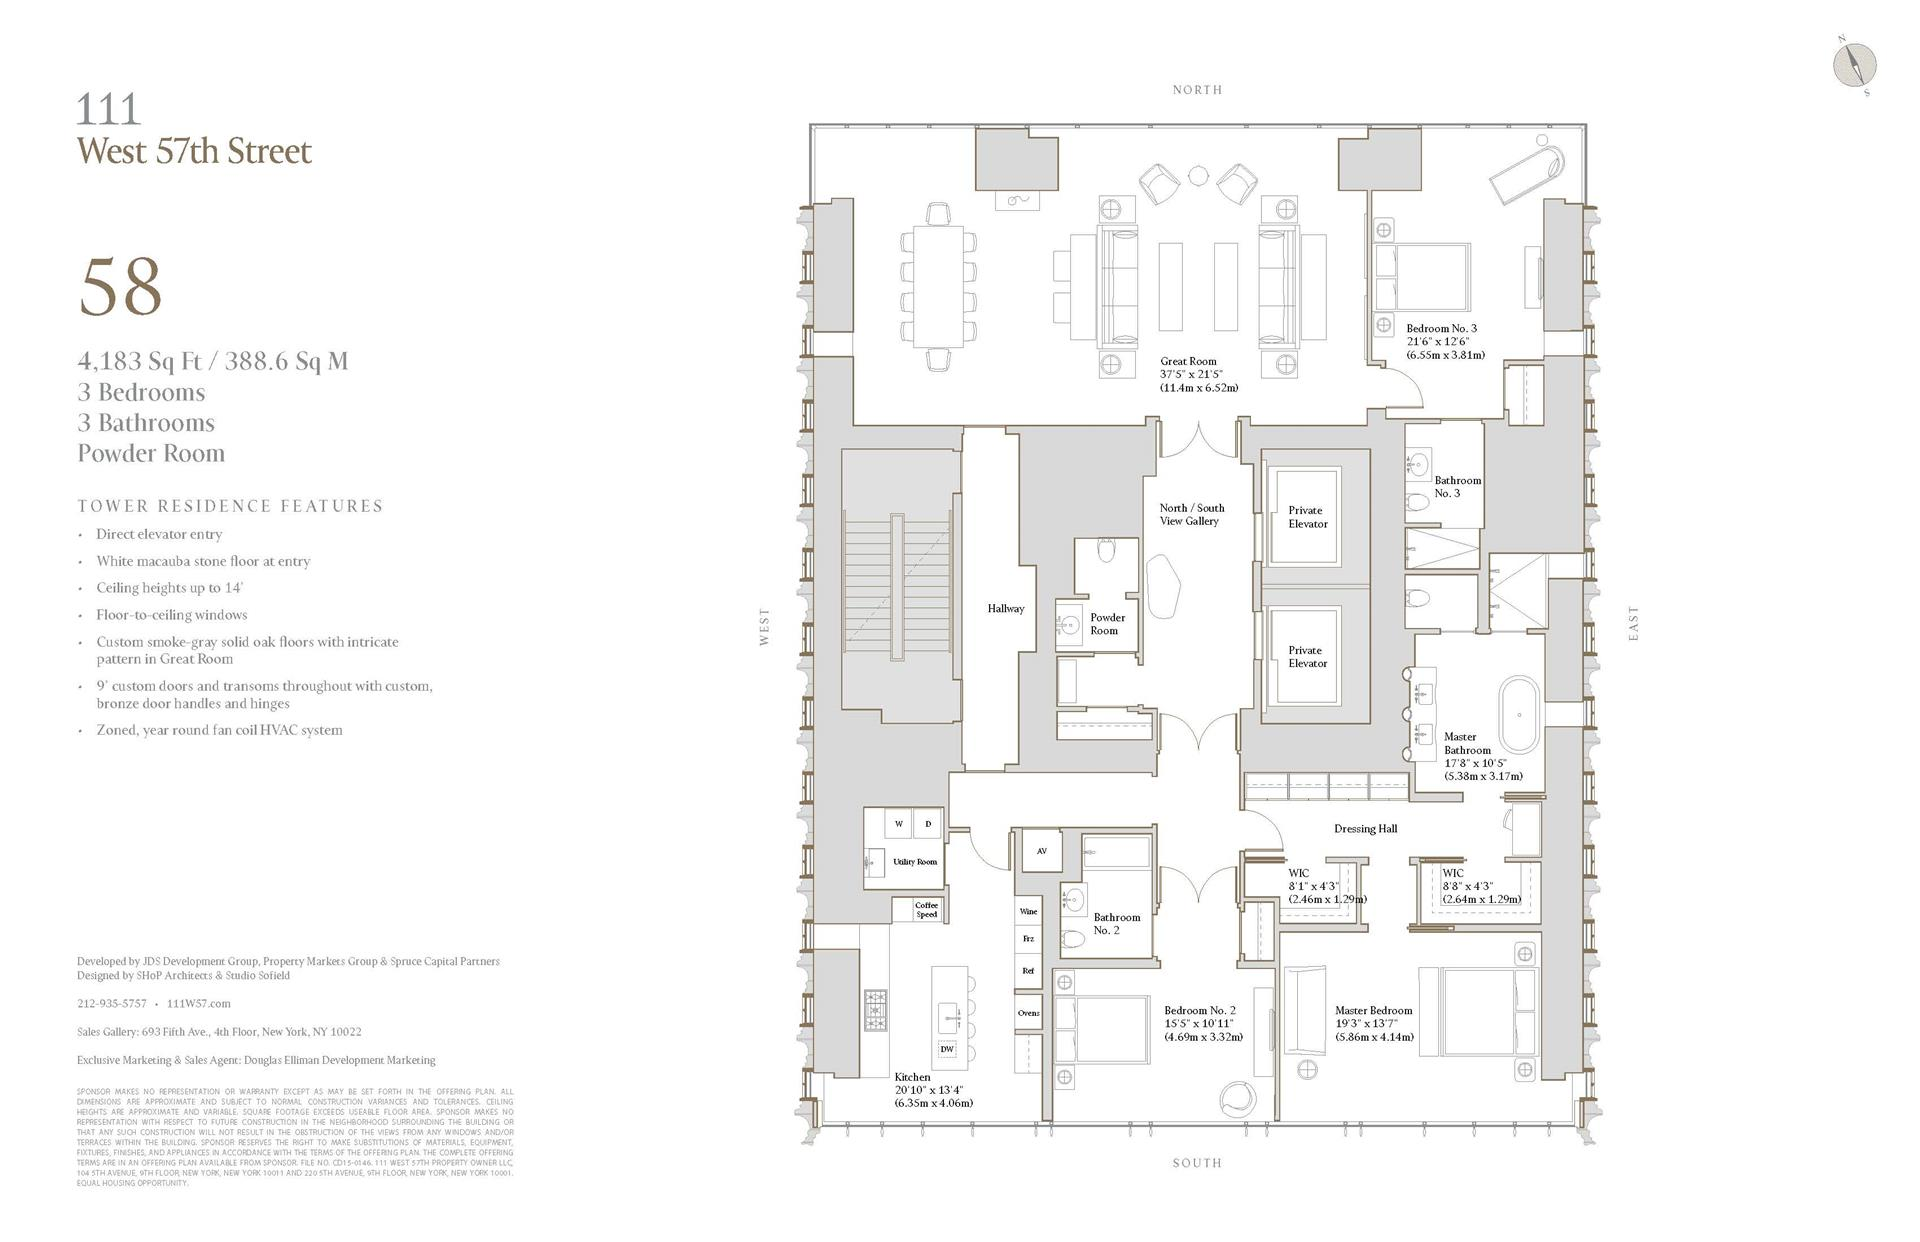 Floor plan of 111 West 57th Street, 58 - Central Park South, New York